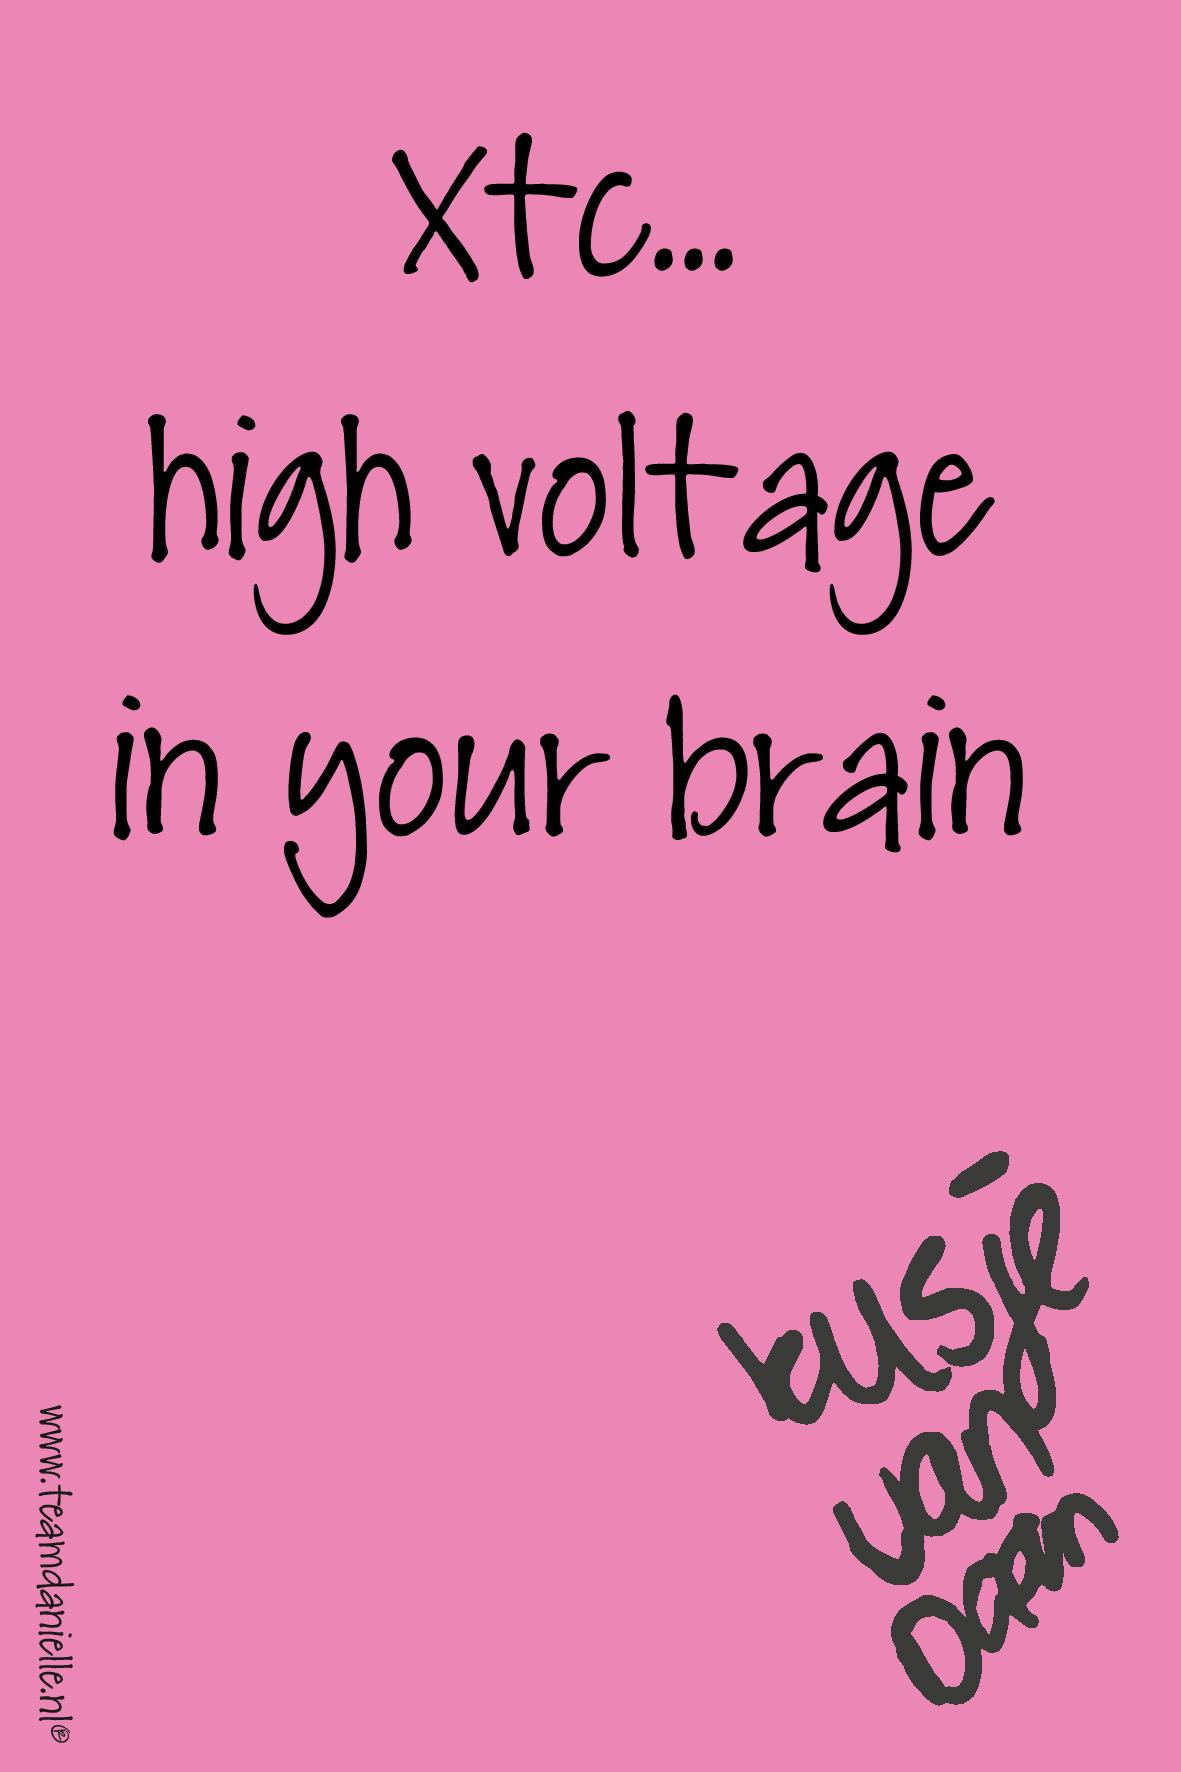 Kusje-190317-high voltage in your brain